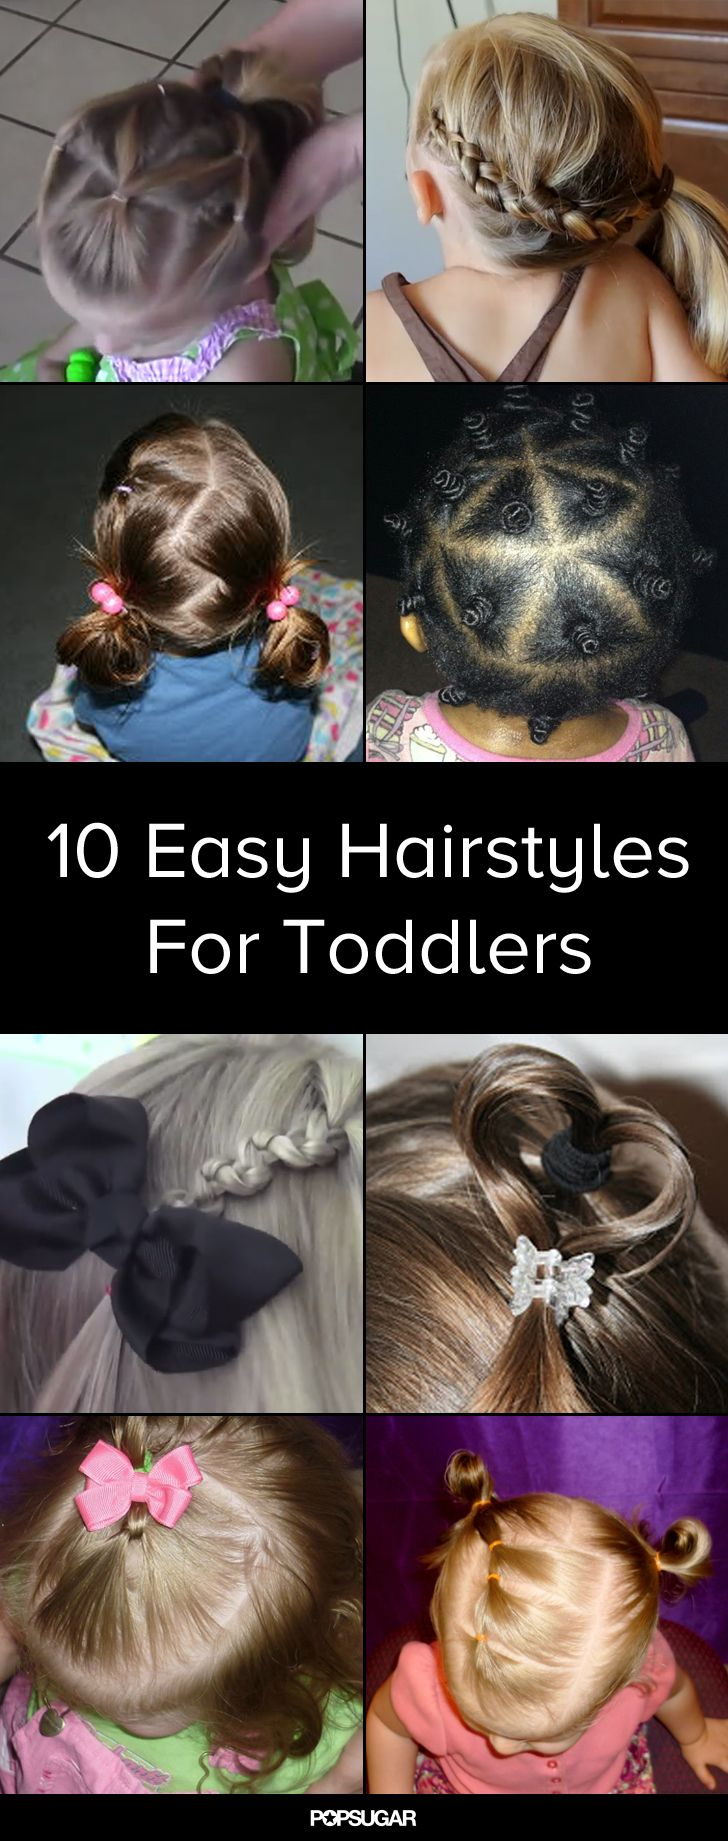 10 Easy-to-Master Hairdos For Your Impatient Toddler: